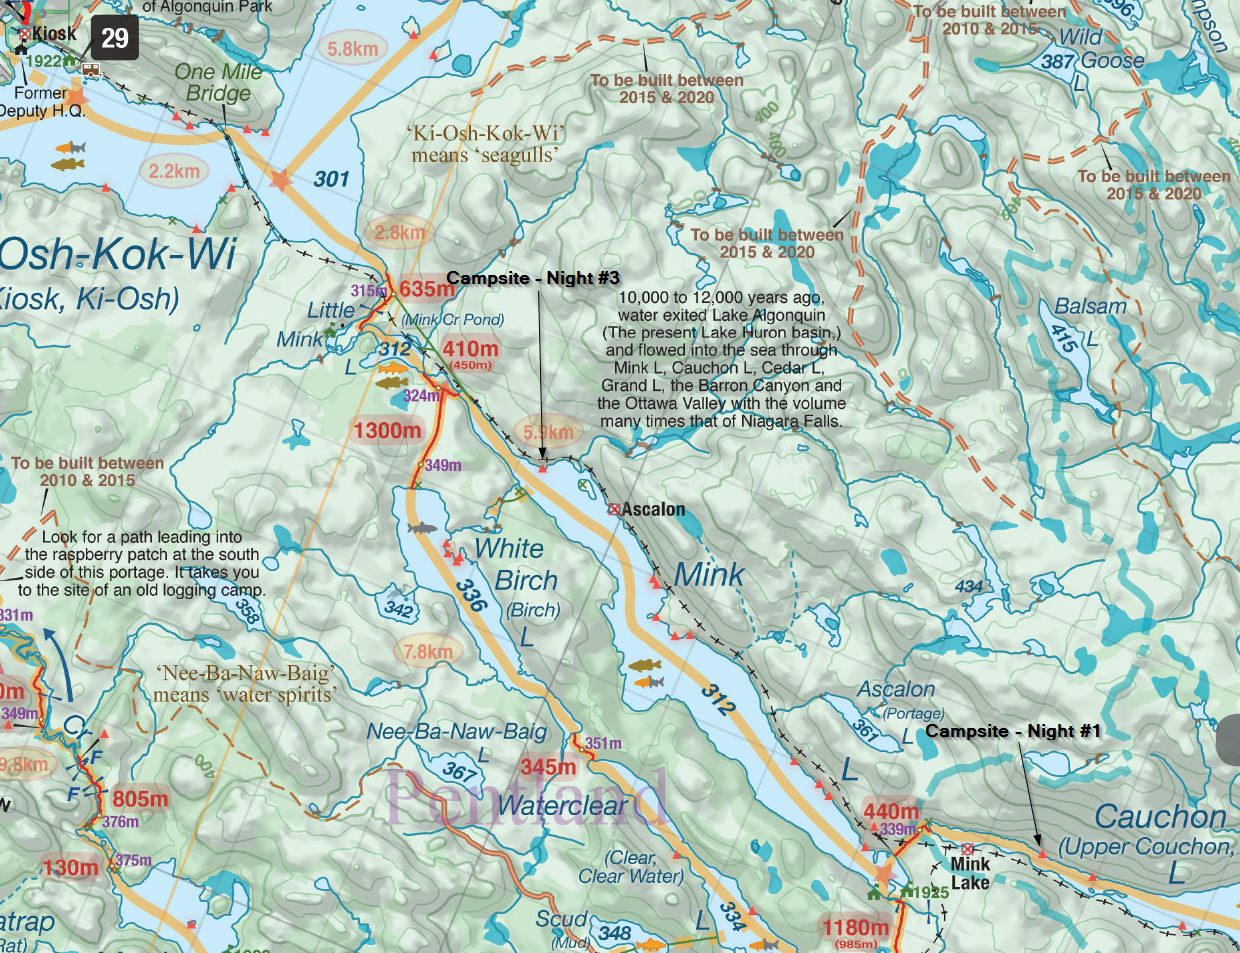 Campsites on nights 1 and 3 ( map courtesy of Jeff McMurtrie )